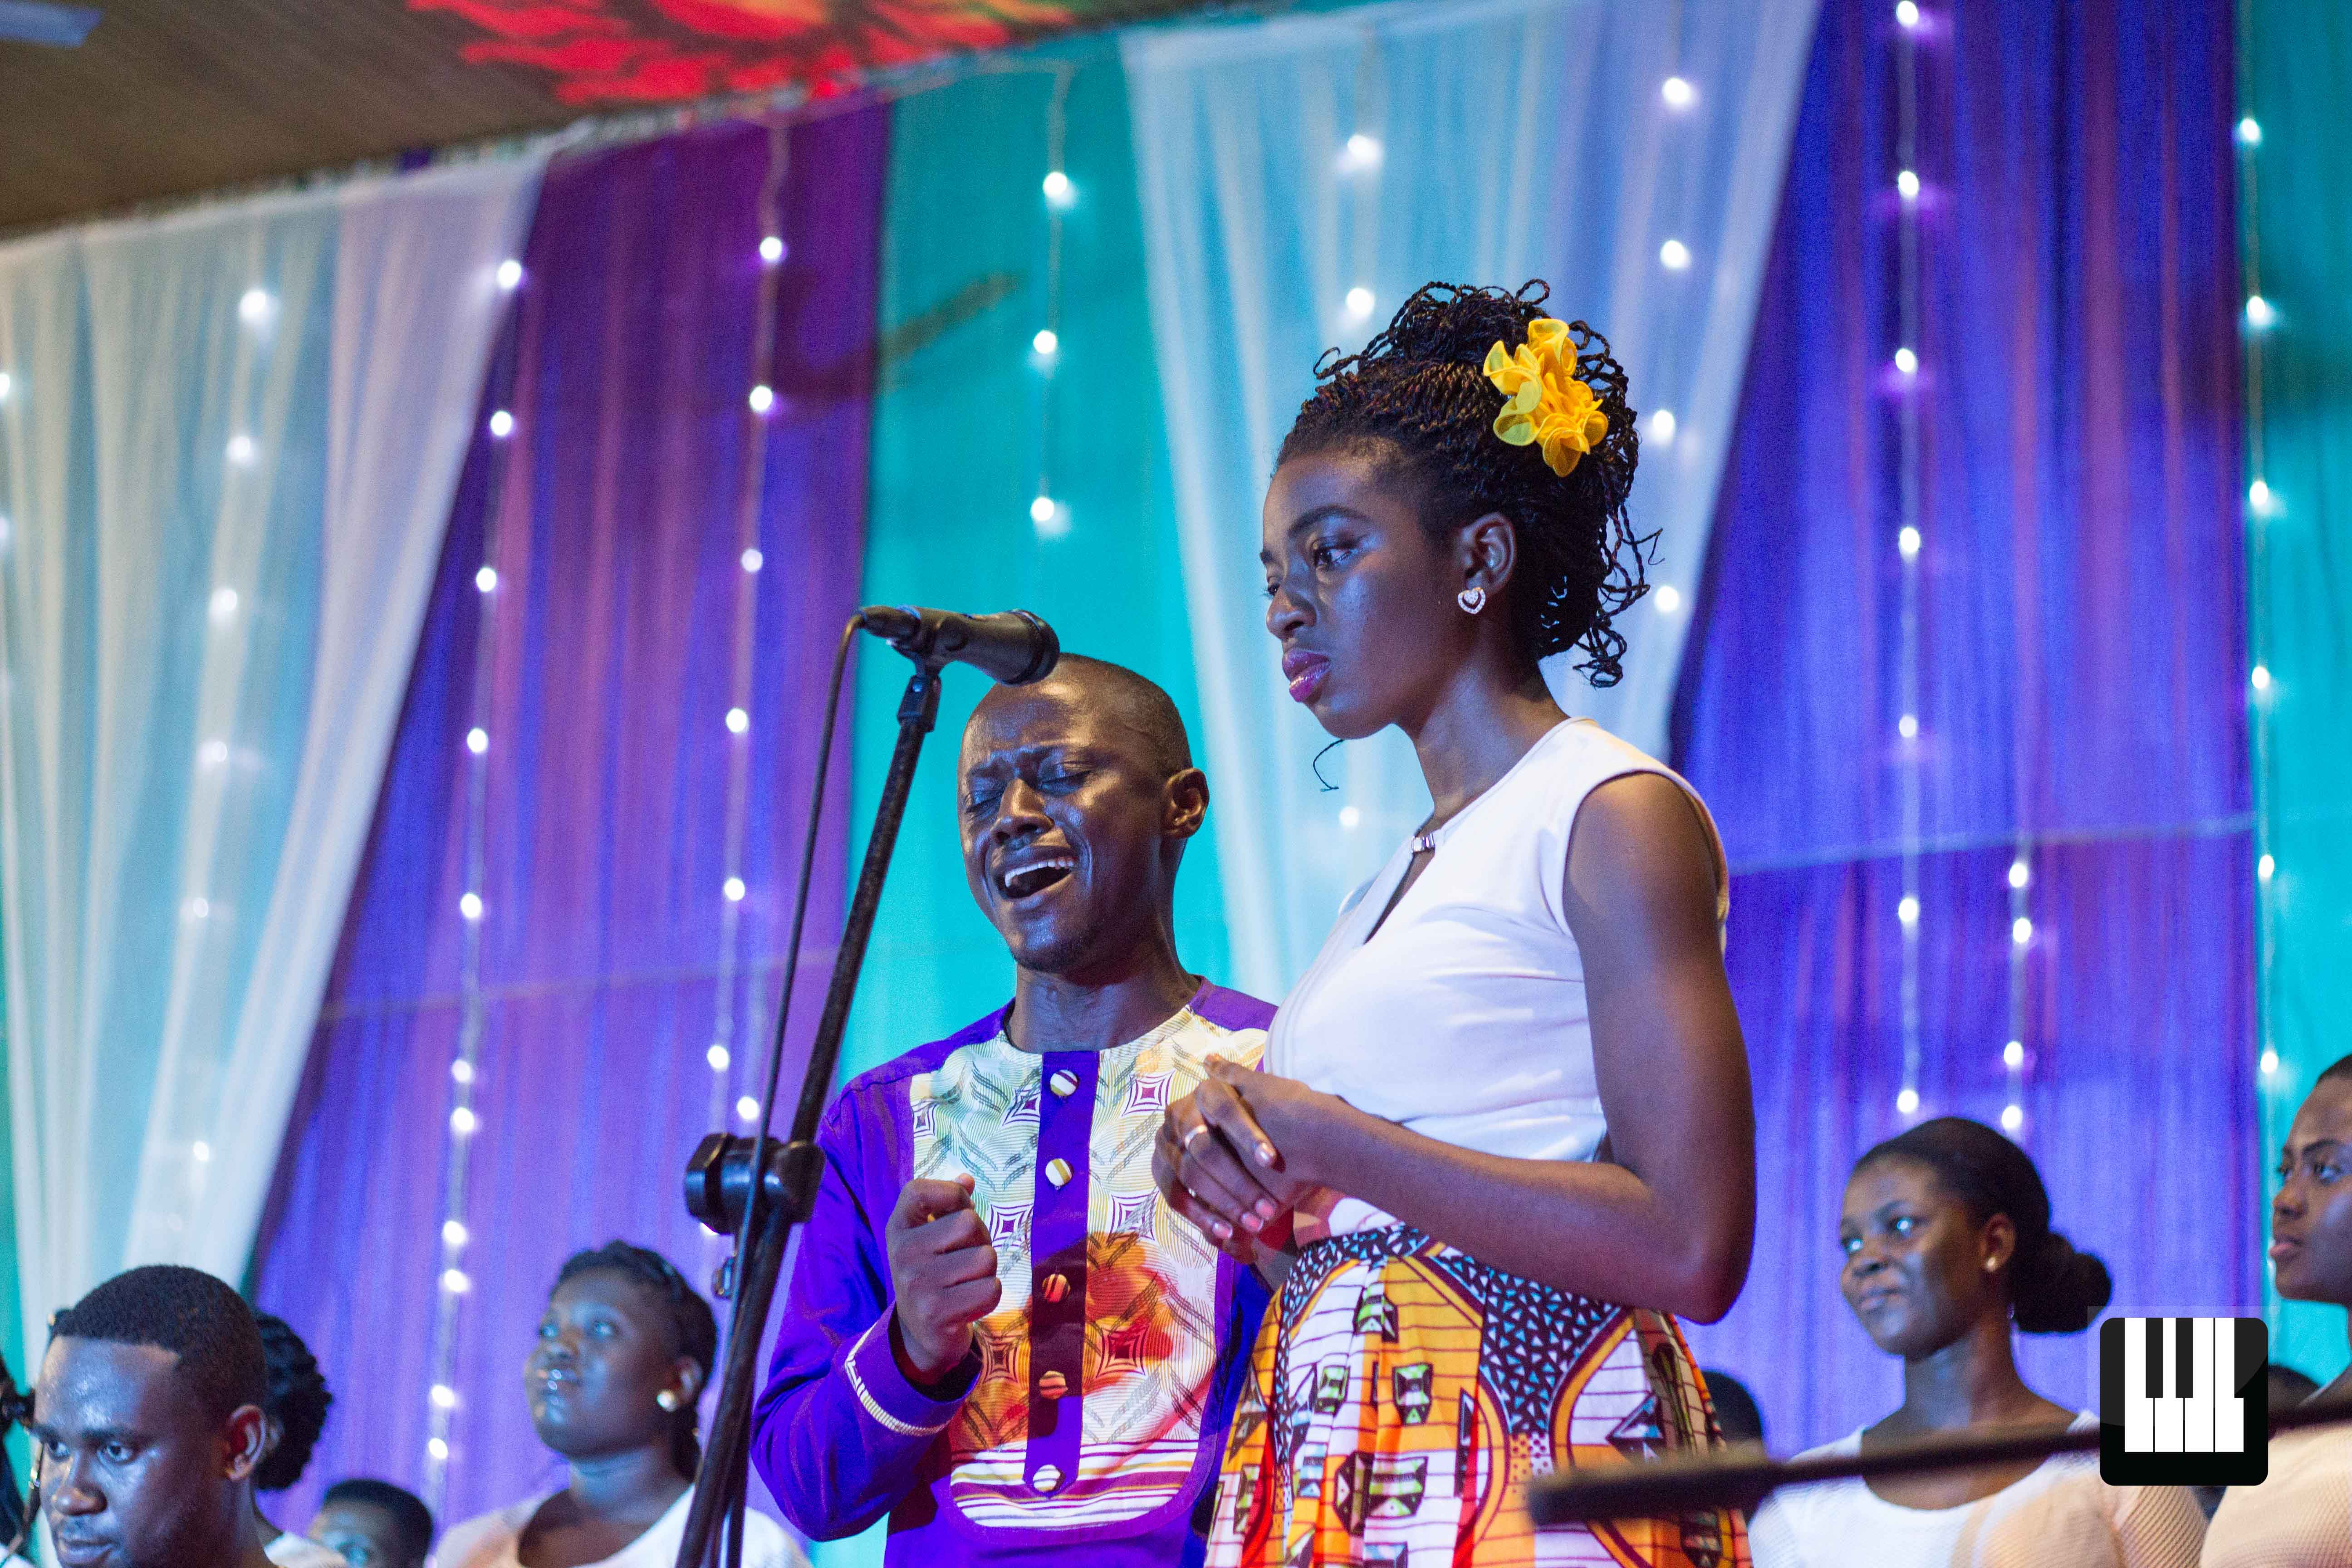 2017 Year in Review Choral Music Ghana's Jesse Johnson takes us through some of the best musical moments of the last year.